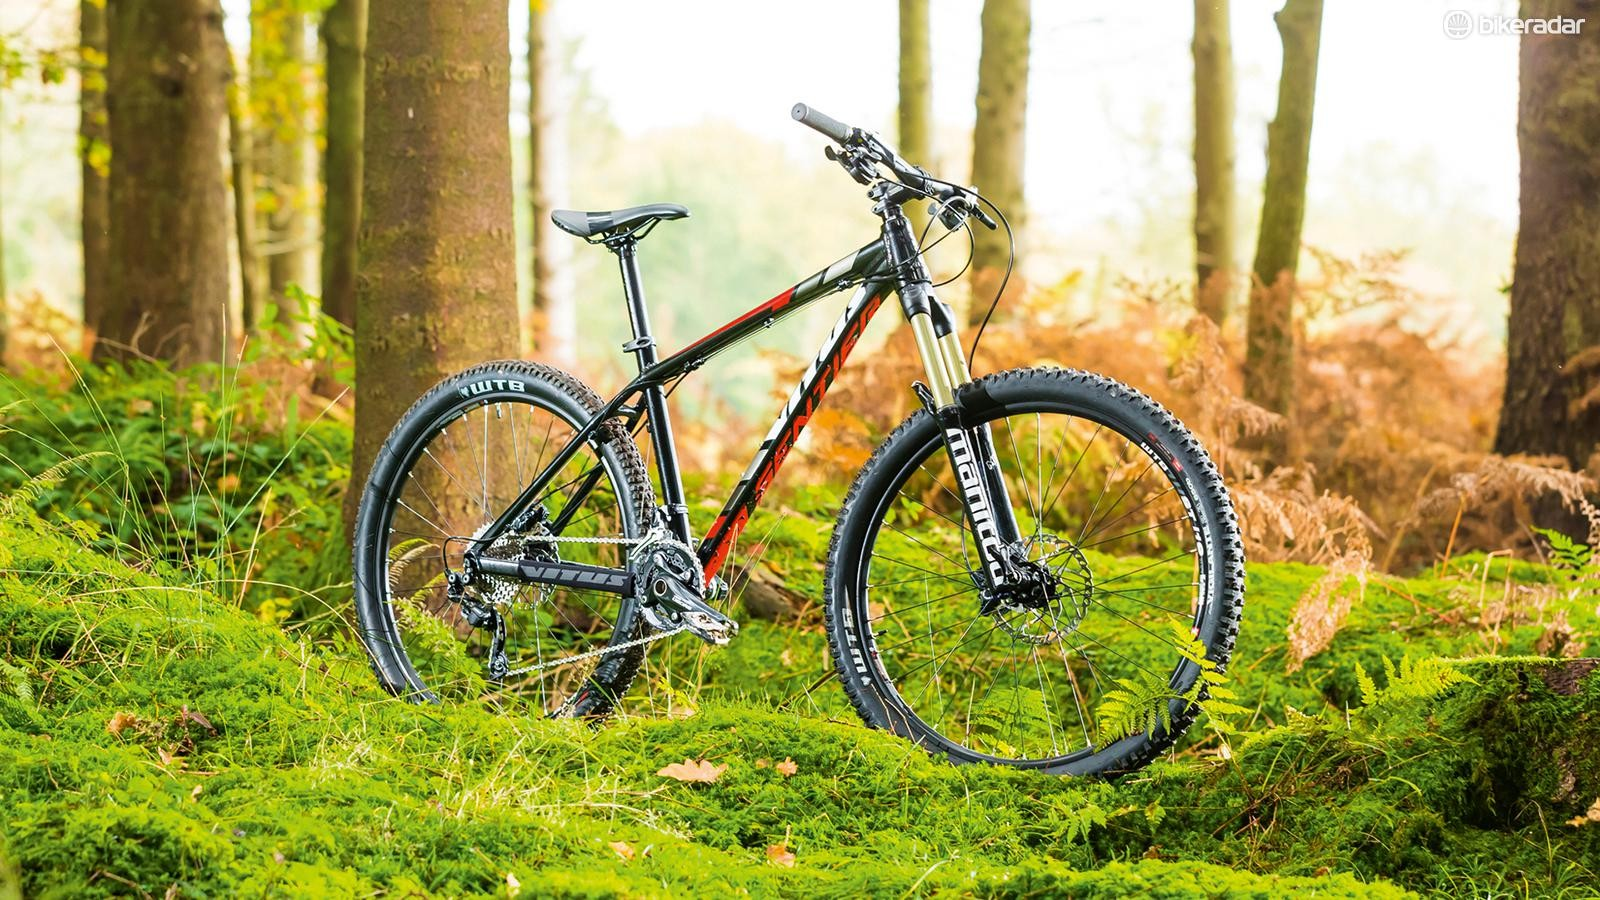 Vitus Sentier 290: A good bike that's ready to rip up the trails from the box